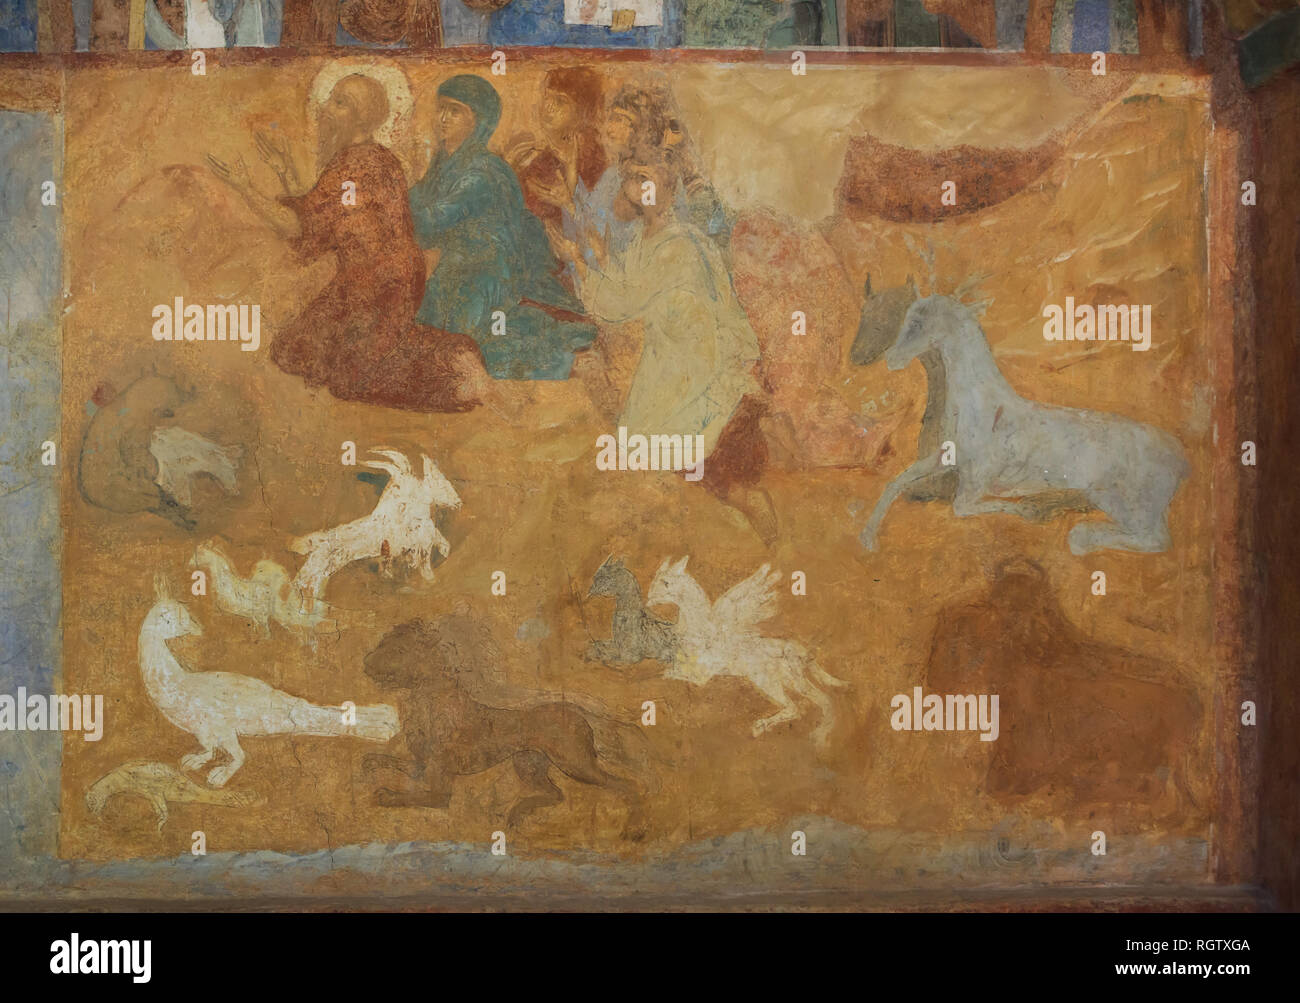 Noah's Sacrifice depicted in the fresco by Russian icon painter Lyubim Ageyev and his workshop (1640-1641) in the west gallery (papert) of the Church of Saint Nicholas Nadein (Nikolai Nadein) in Yaroslavl, Russia. Stock Photo